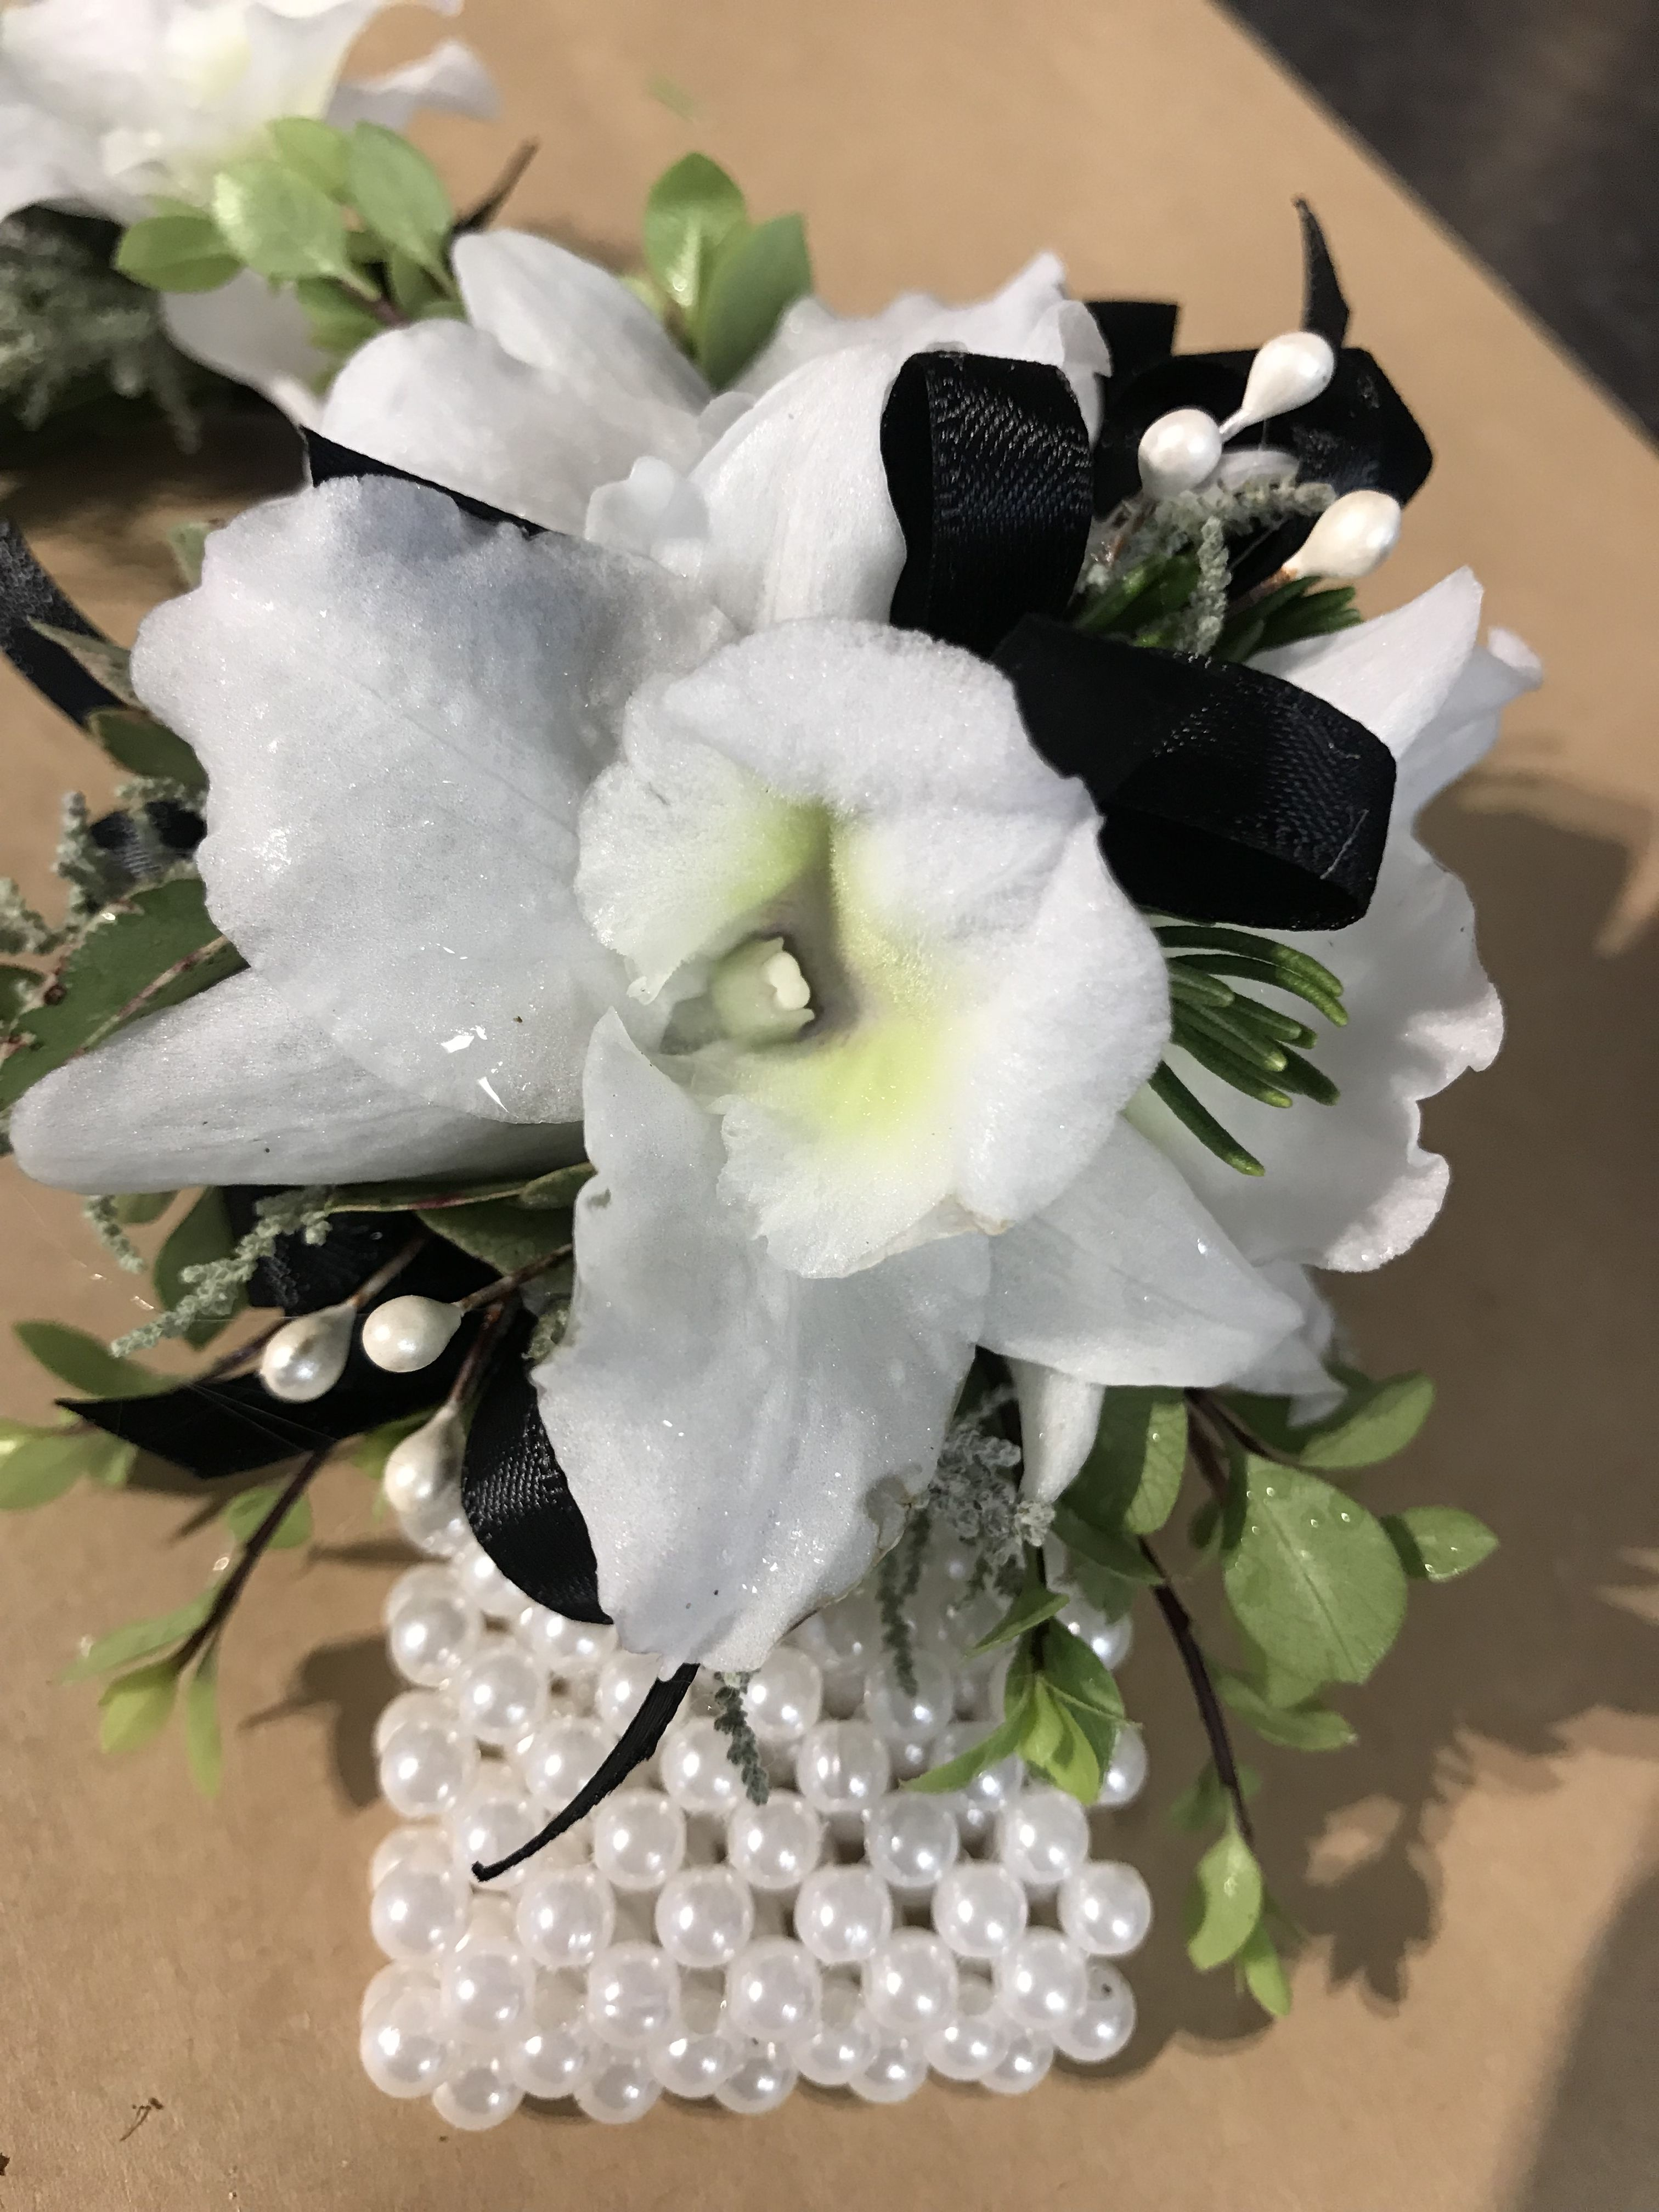 Pin By Gerry Fancher On Flowers Pinterest Corsage Orchid